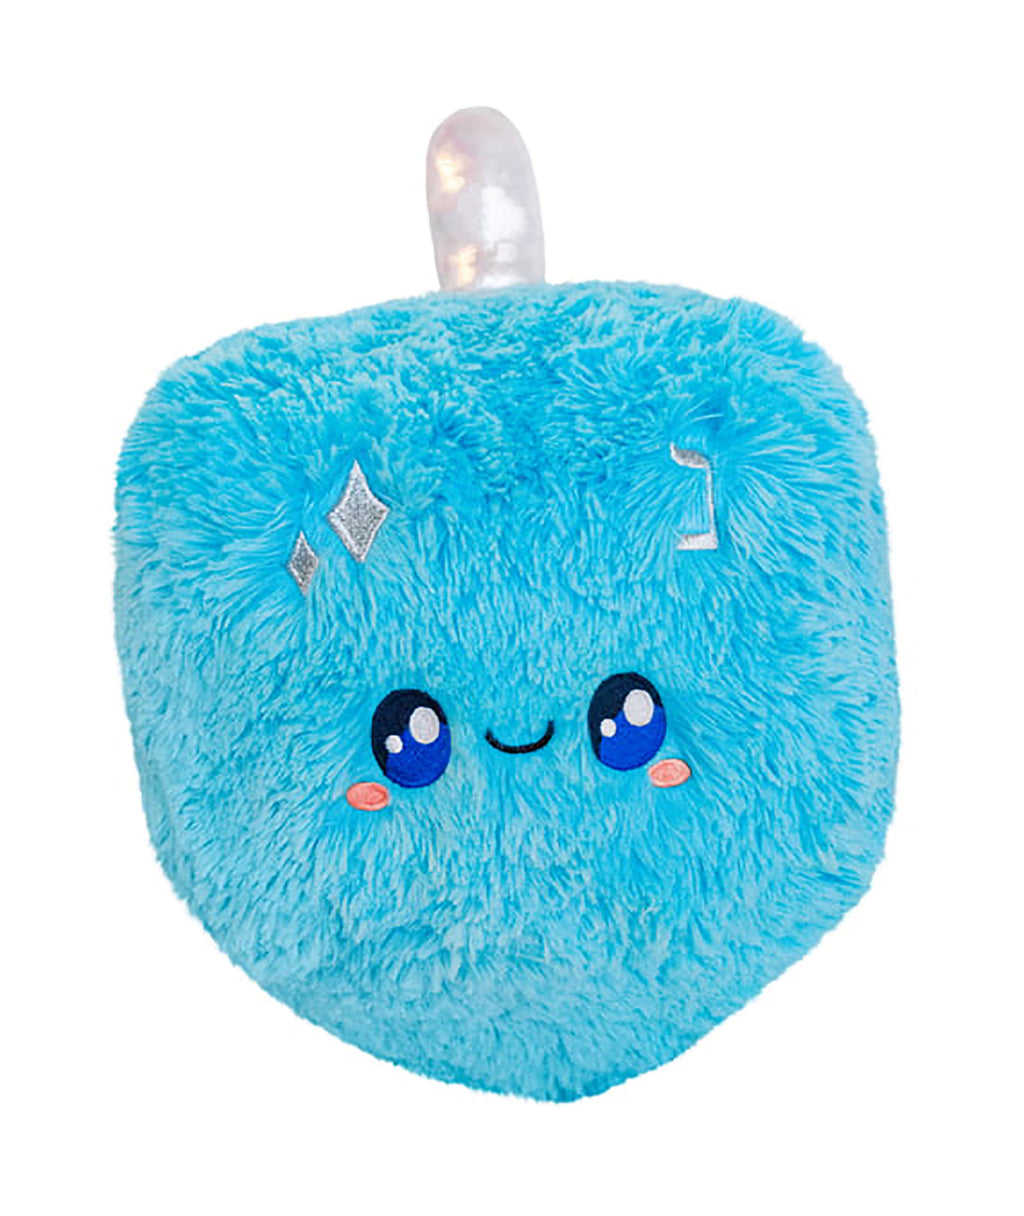 Squishable Mini Dreidel